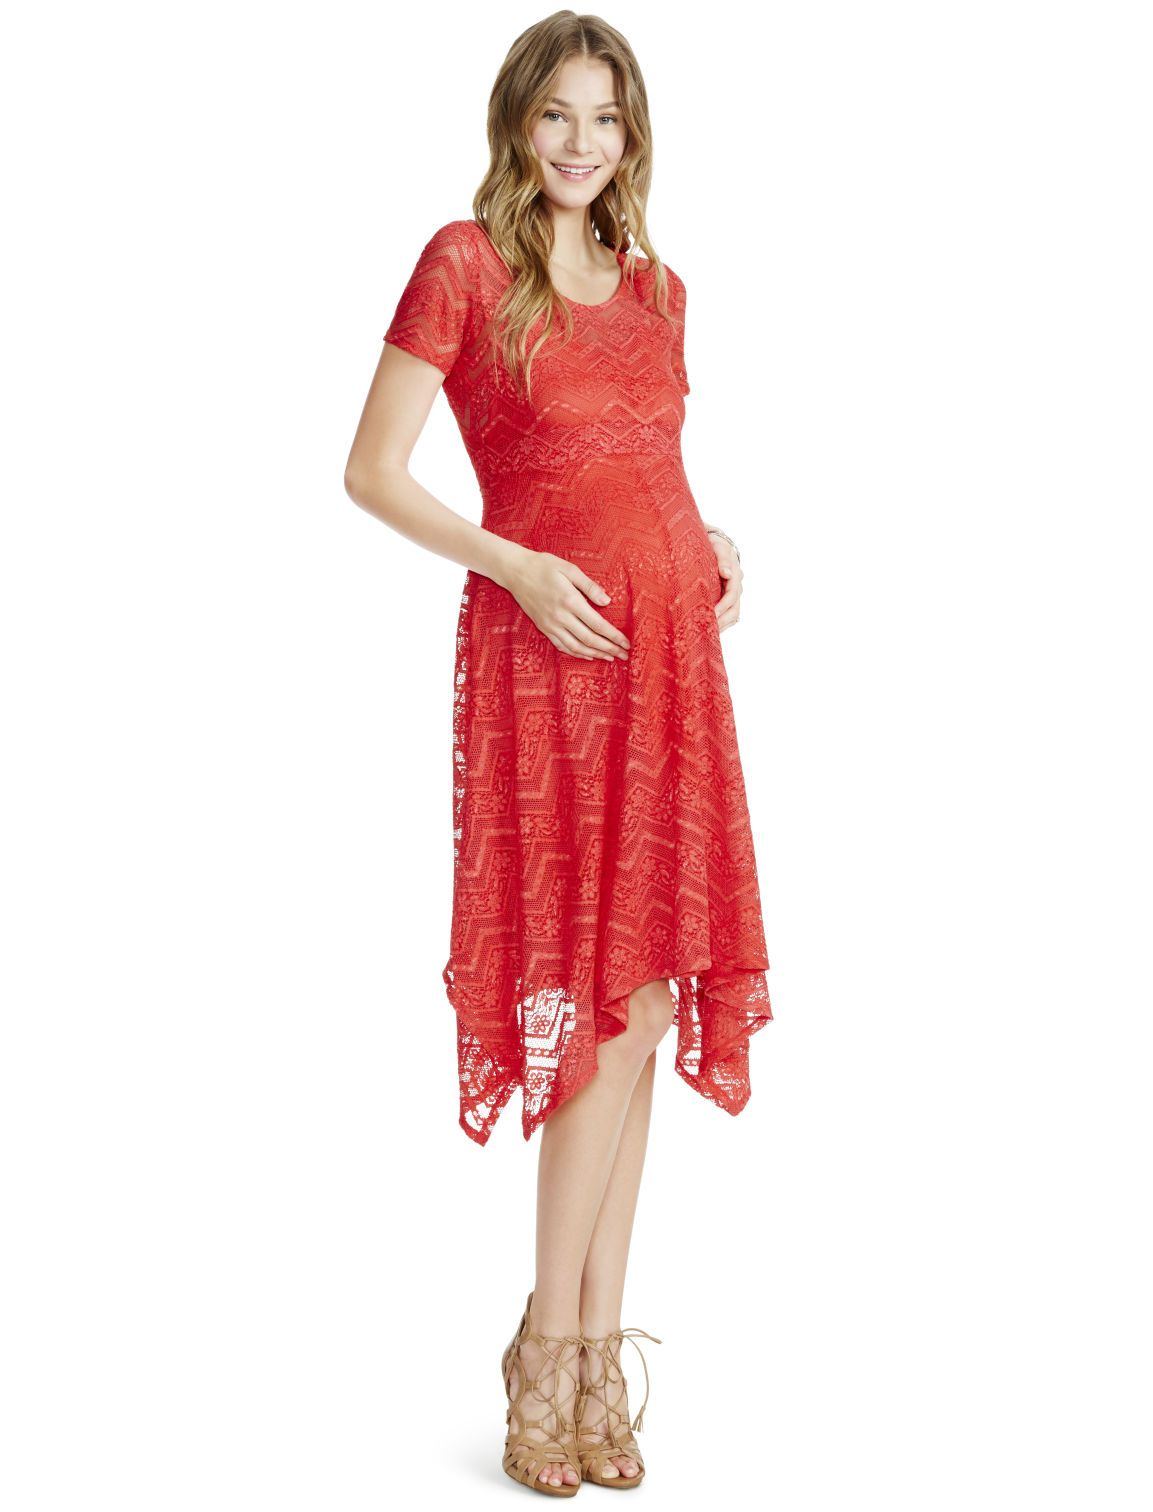 782aa4bf995c0 Motherhood Maternity Jessica Simpson Lace Hanky Hem Maternity Dress ...